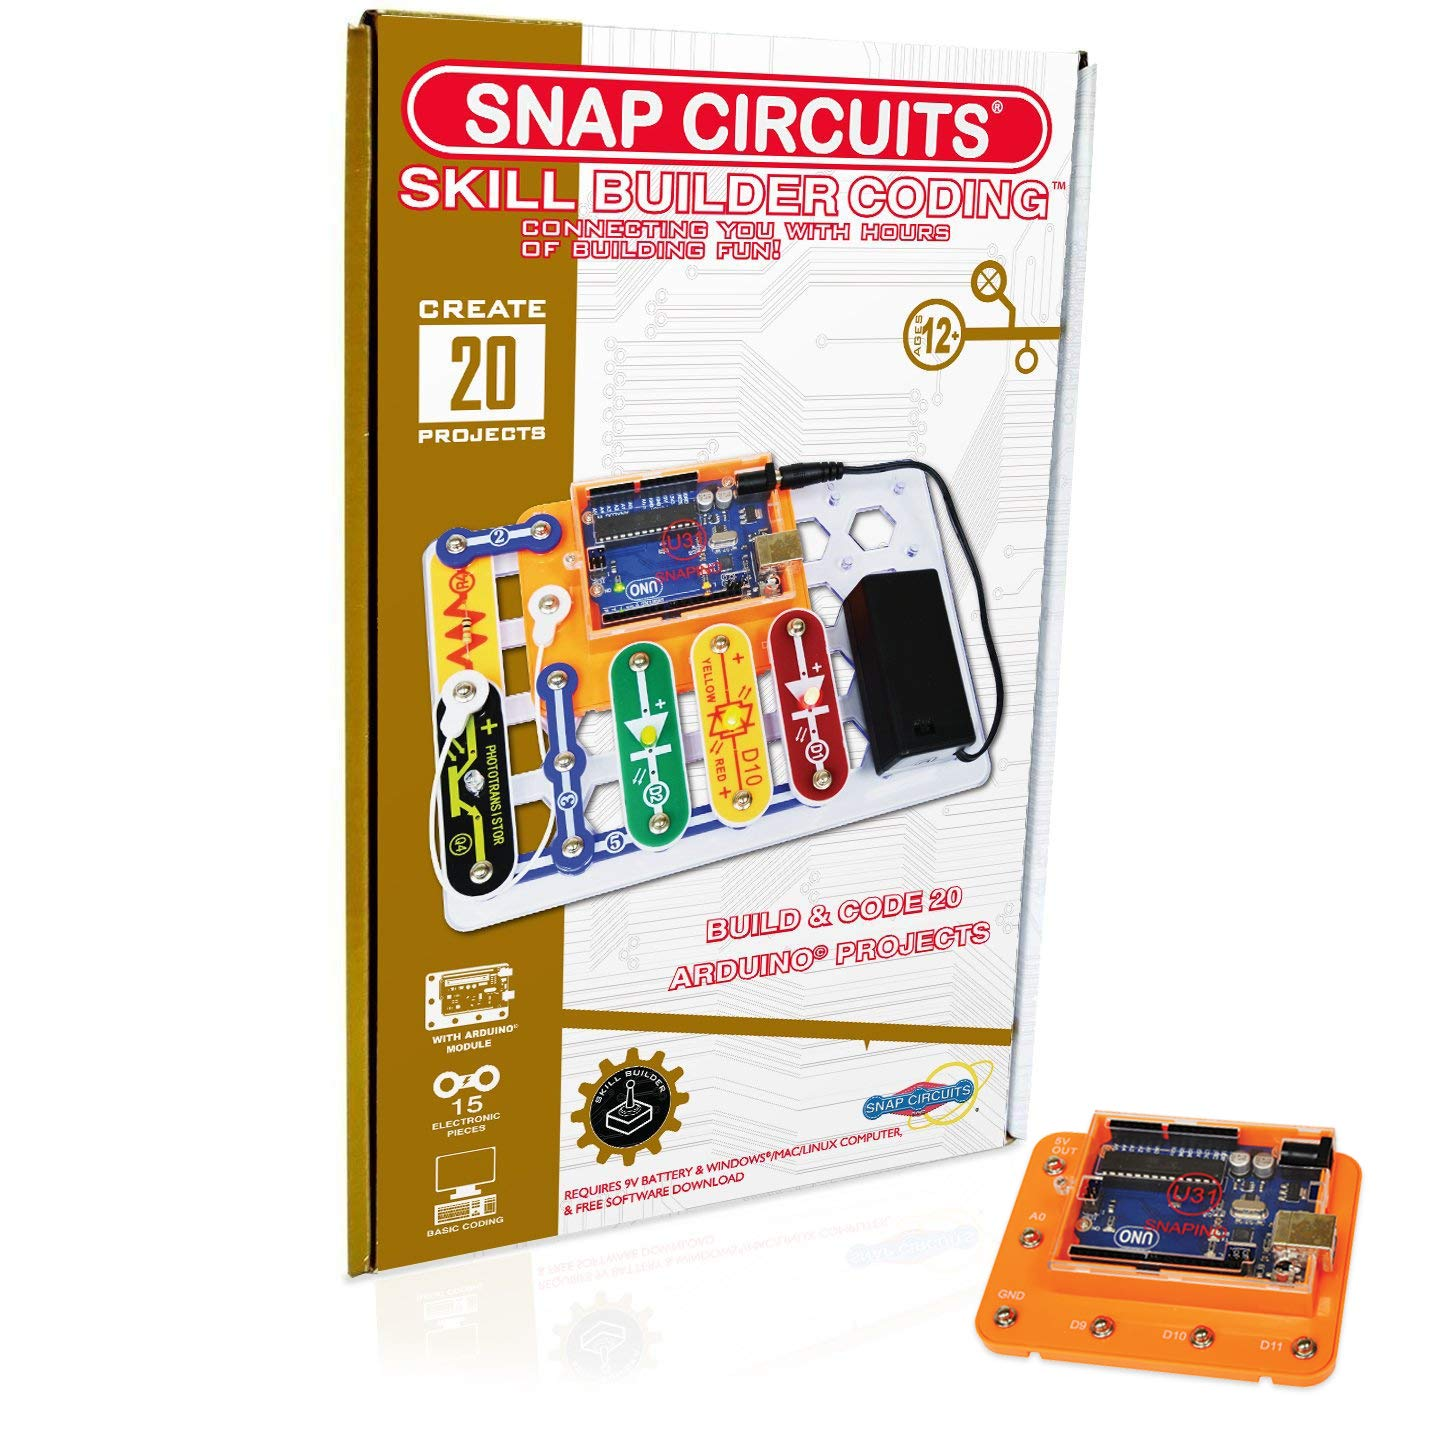 Snap Circuits Skill Builder Coding Making A Circuit Maker 125 Projects Product Details Page Arduino Compatible Perfect Introduction To Great Stem